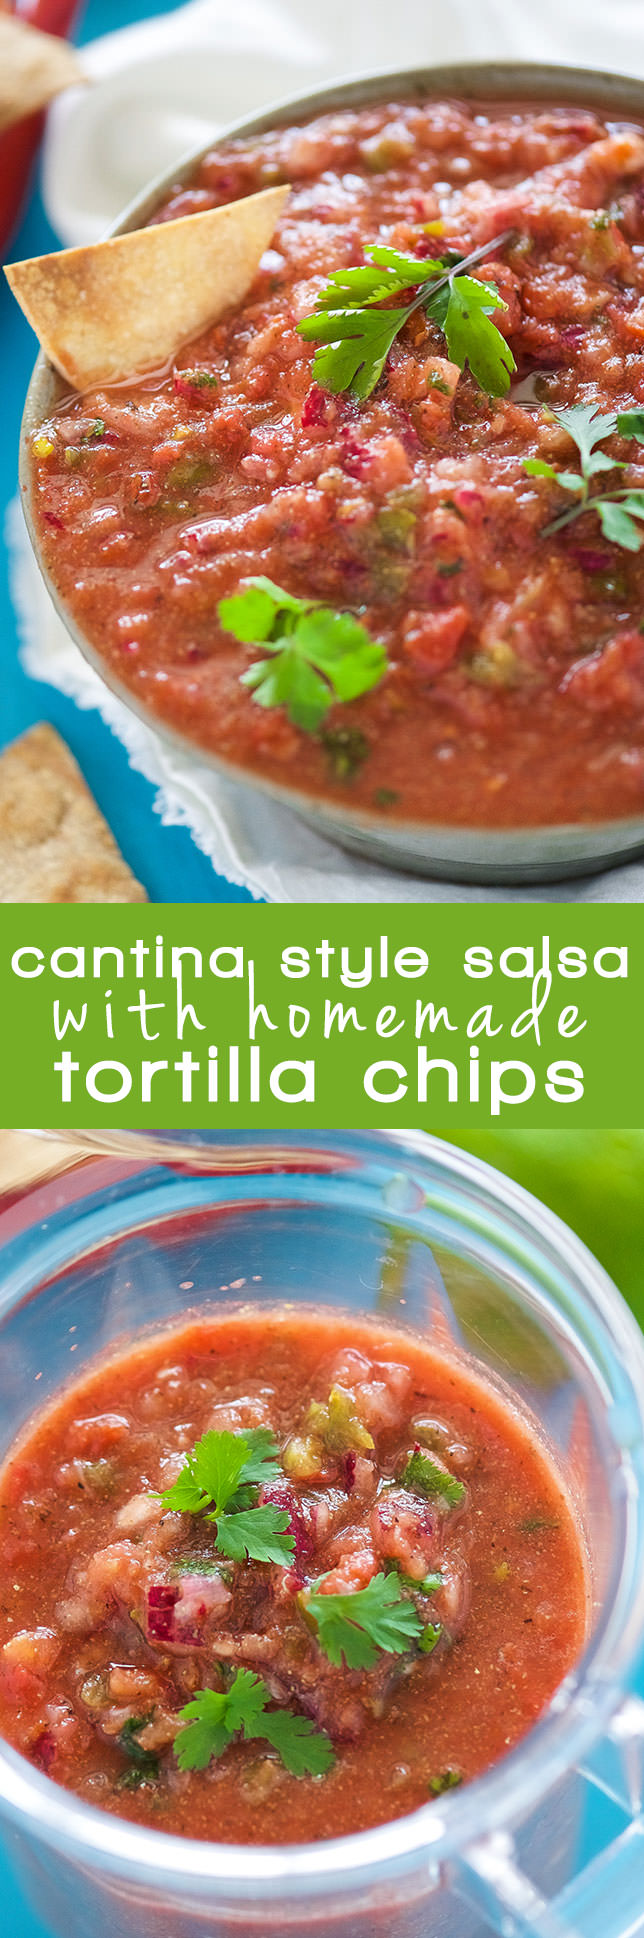 With fresh ingredients, this simple and delicious cantina style salsa with homemade corn tortilla chips comes together quickly for a tasty snack!